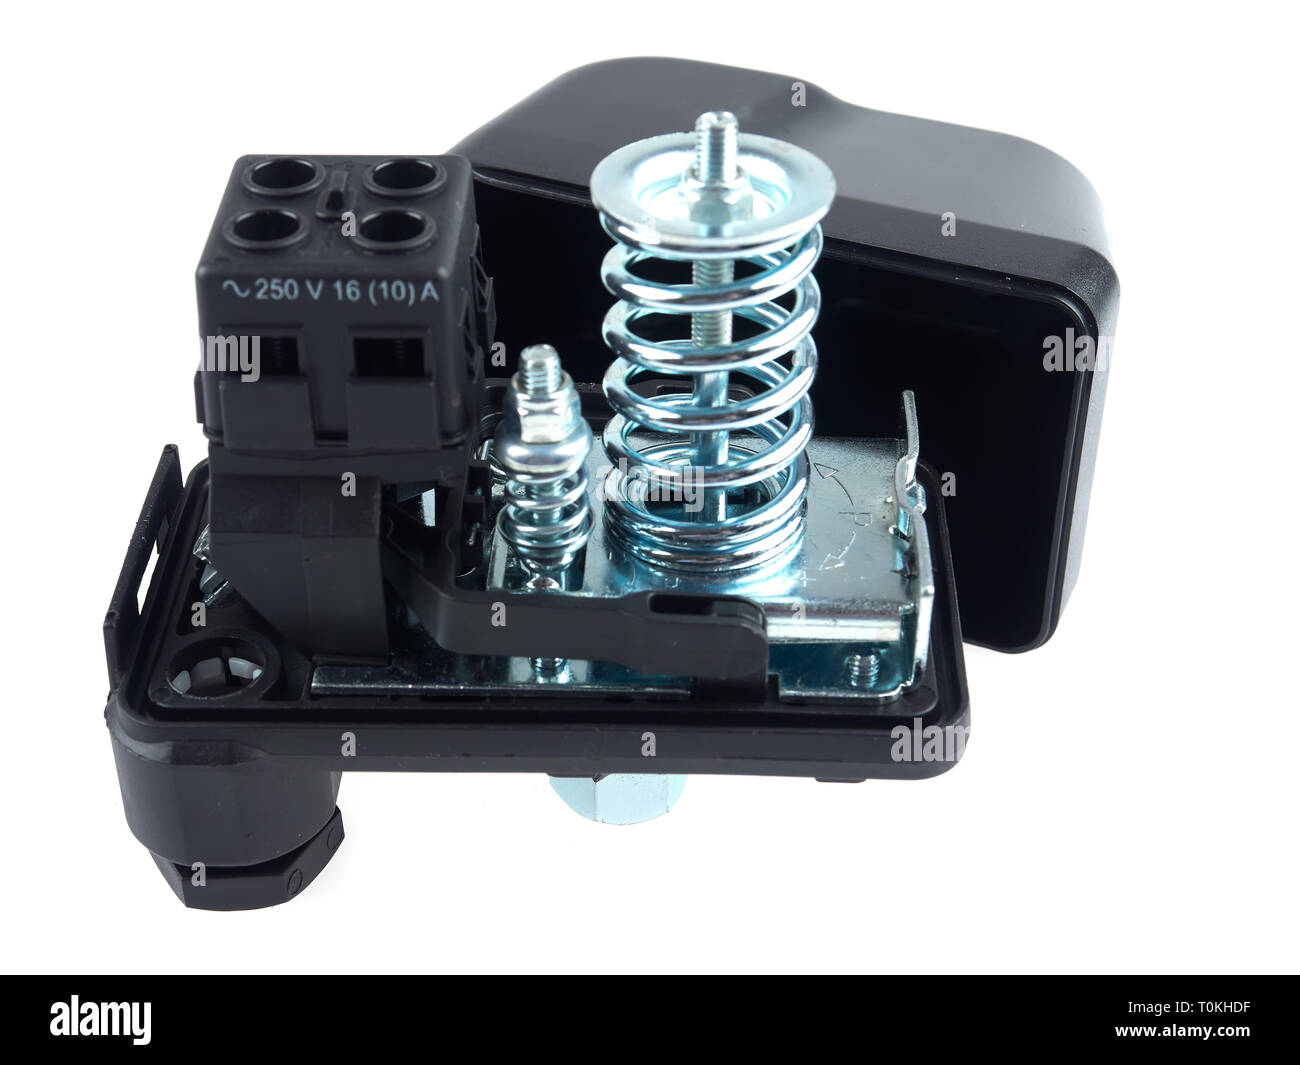 Druckschalter Wasserpumpe Pressure Switch Stockfotos Pressure Switch Bilder Alamy